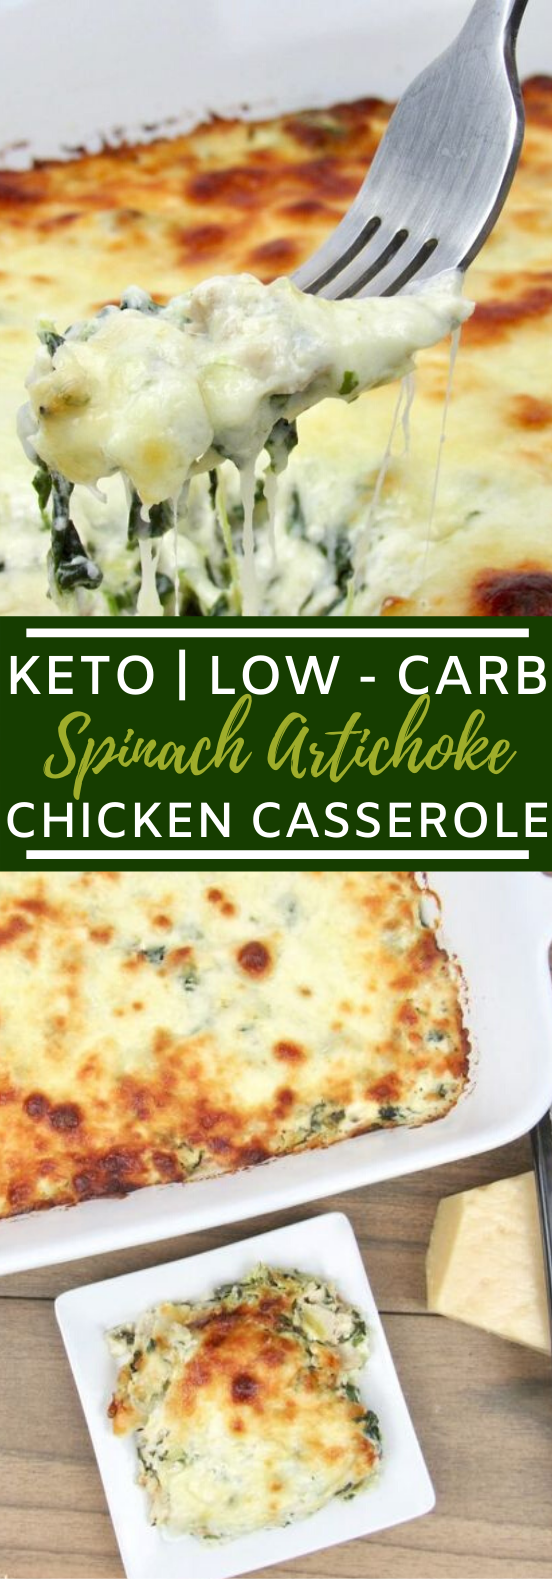 Spinach Artichoke Chicken Casserole – Keto and Low Carb #lowcarb #dinner #keto #diet #casserole